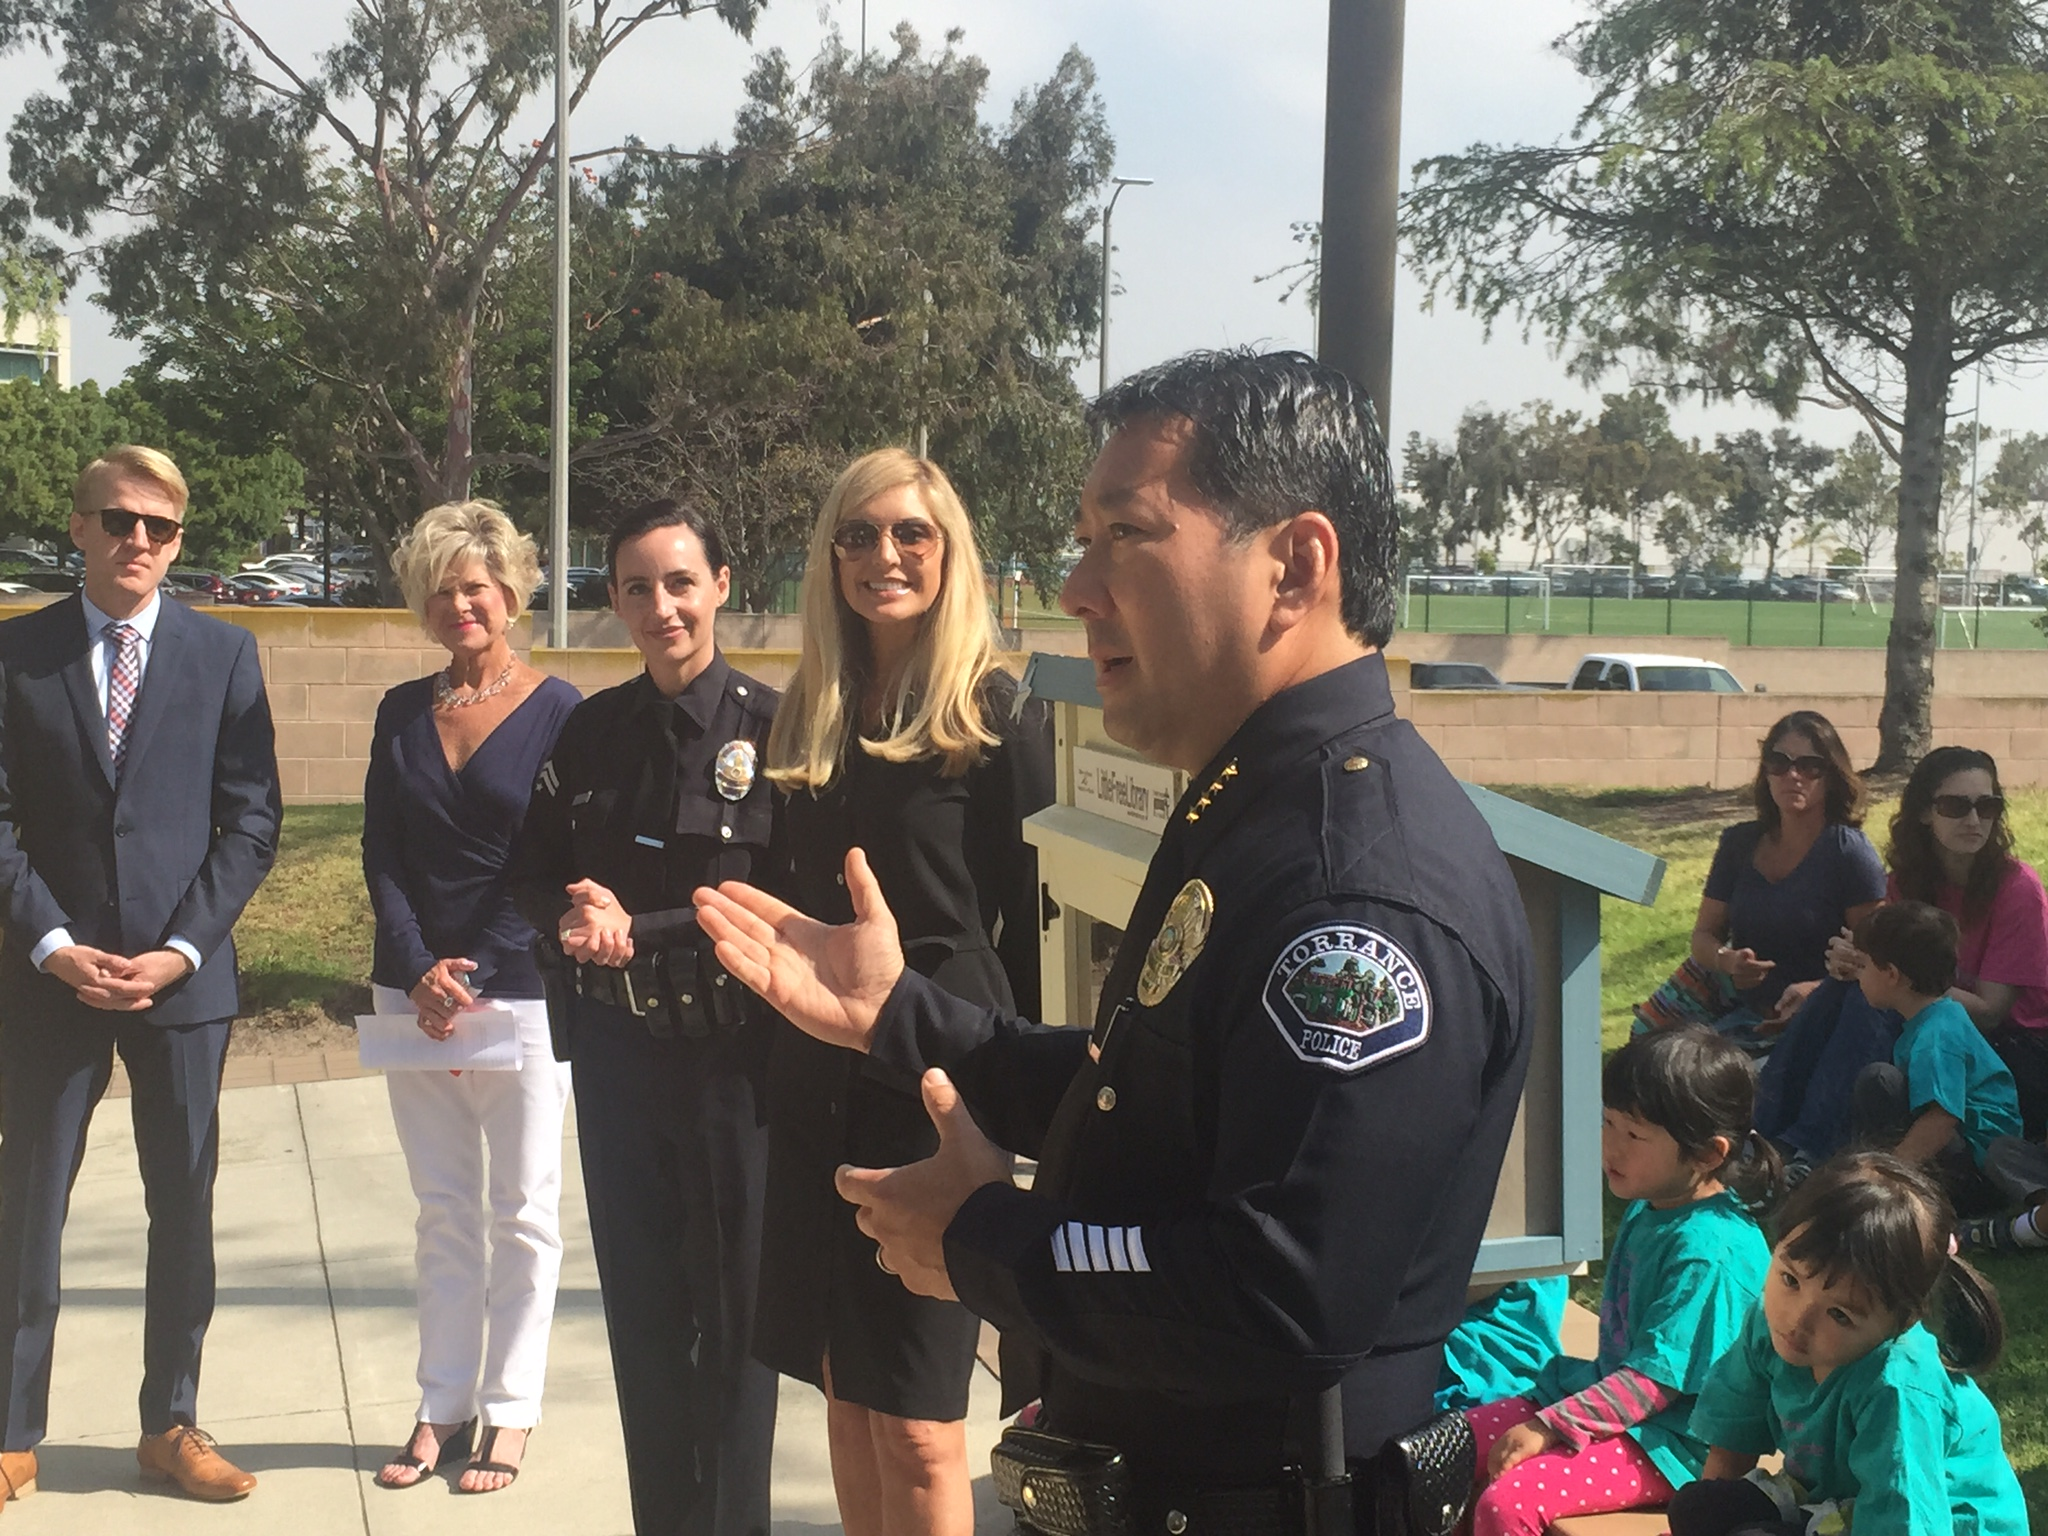 """""""Child custody exchanges take place in the police department lobby regularlyandthe Little Free Library will be a welcoming activity for all involved."""" - Torrance Chief of Police, Mark Matsuda"""